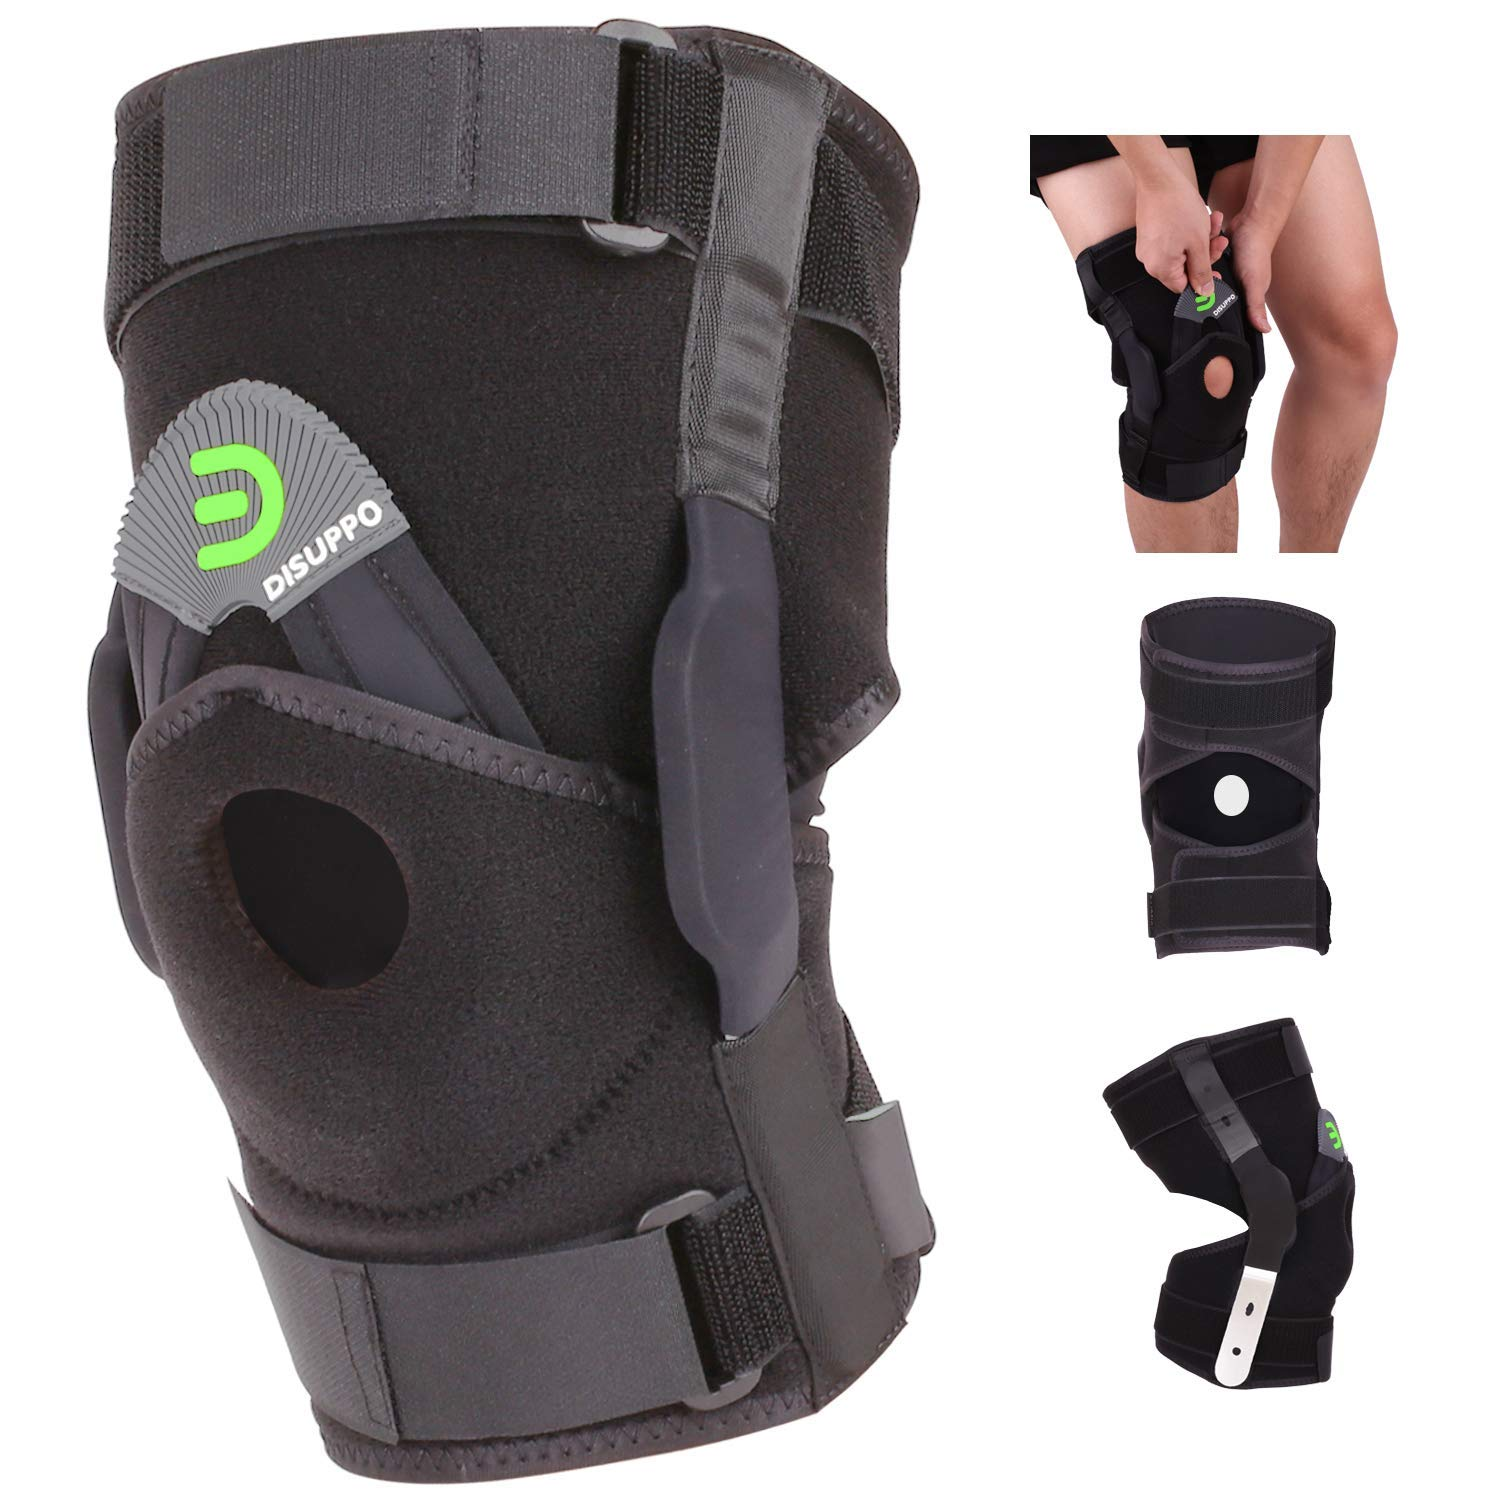 DISUPPO Adjustable Stabilizer Arthritis Meniscus